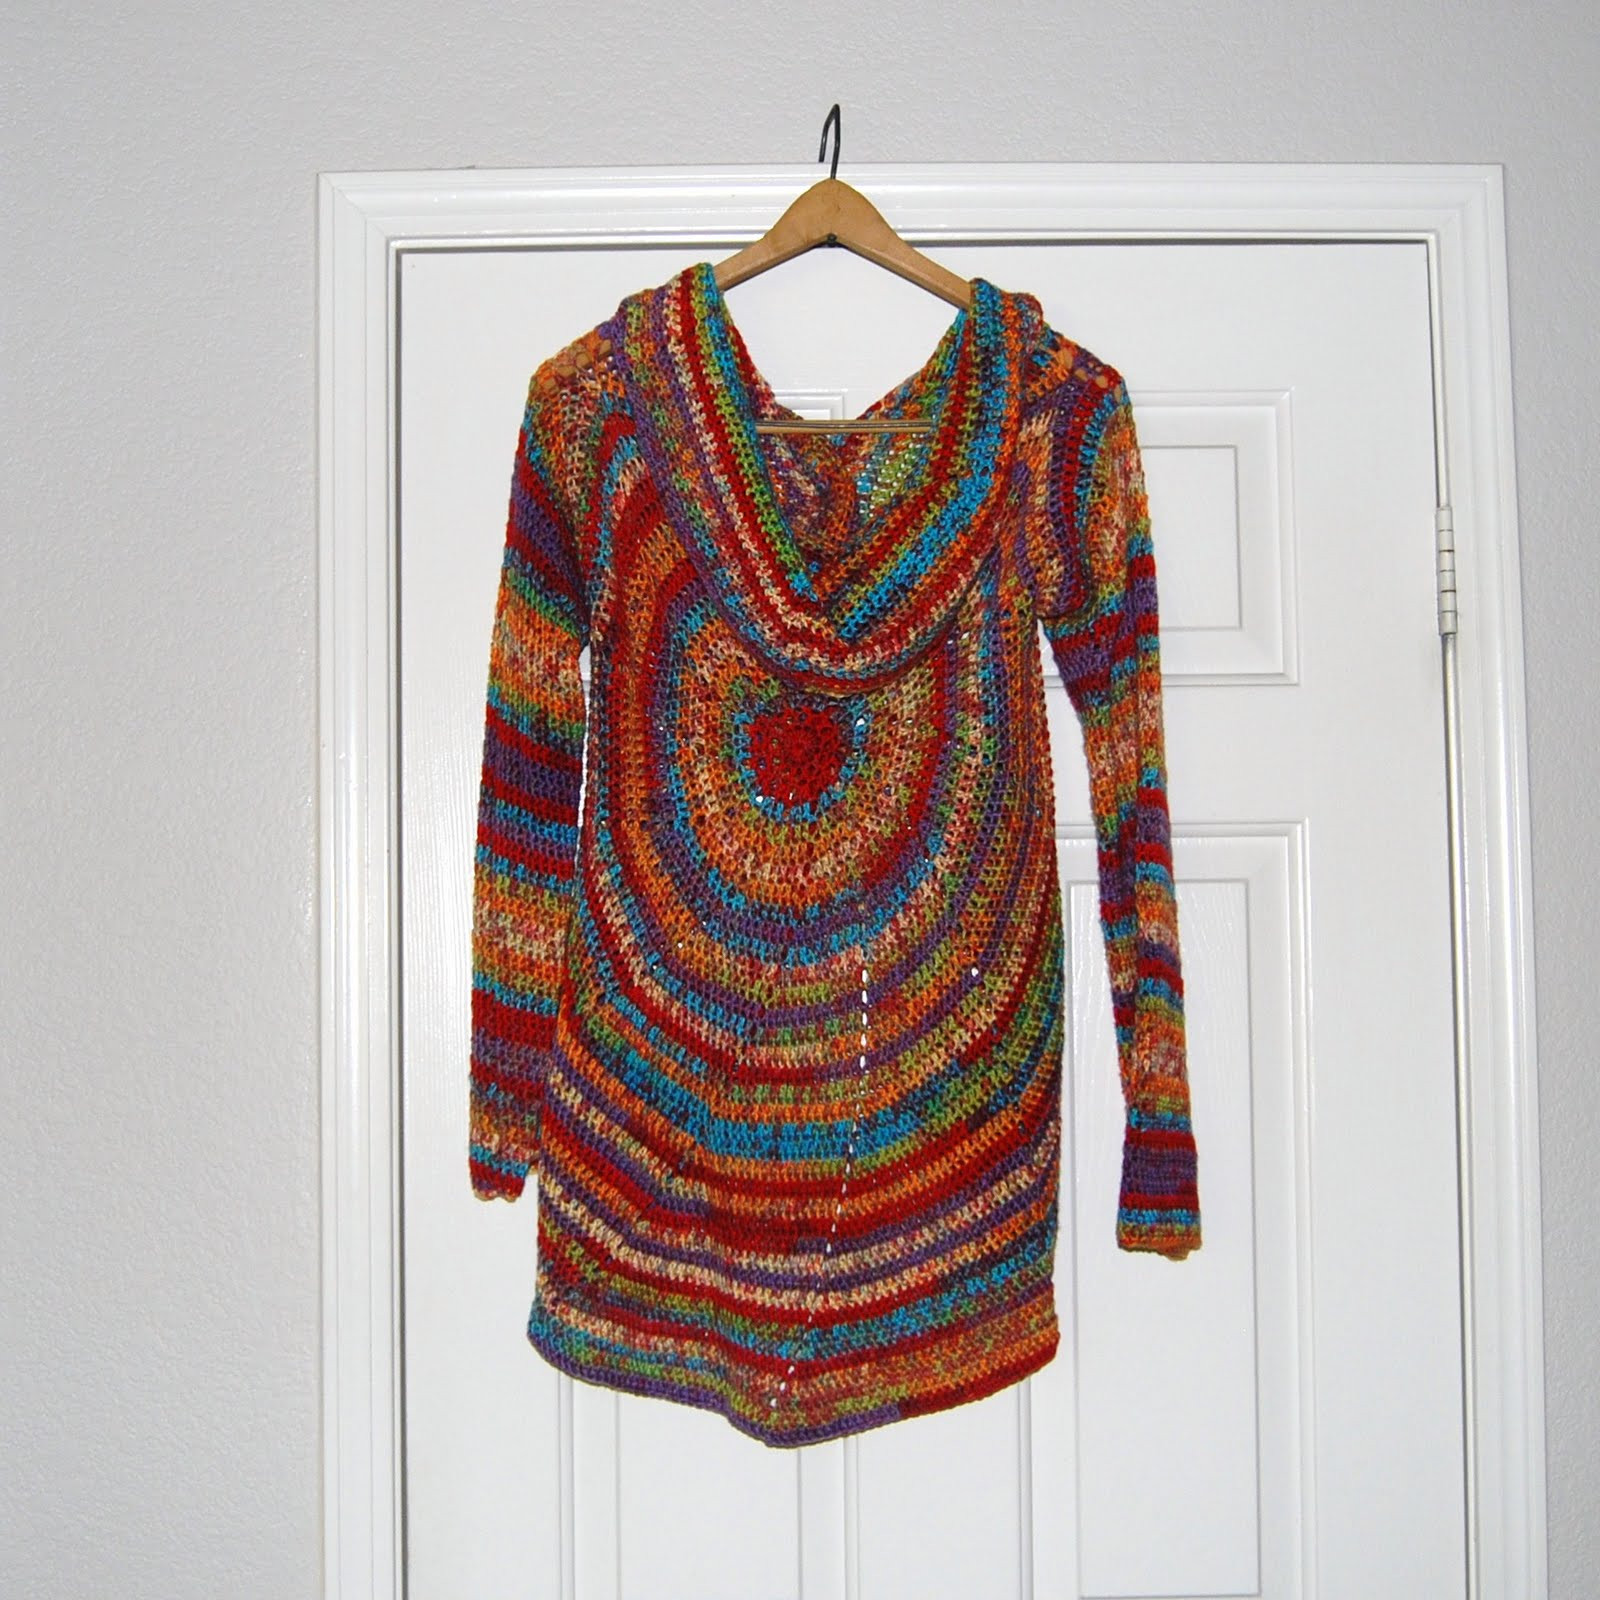 The Laughing Willow My version of the pinwheel sweater